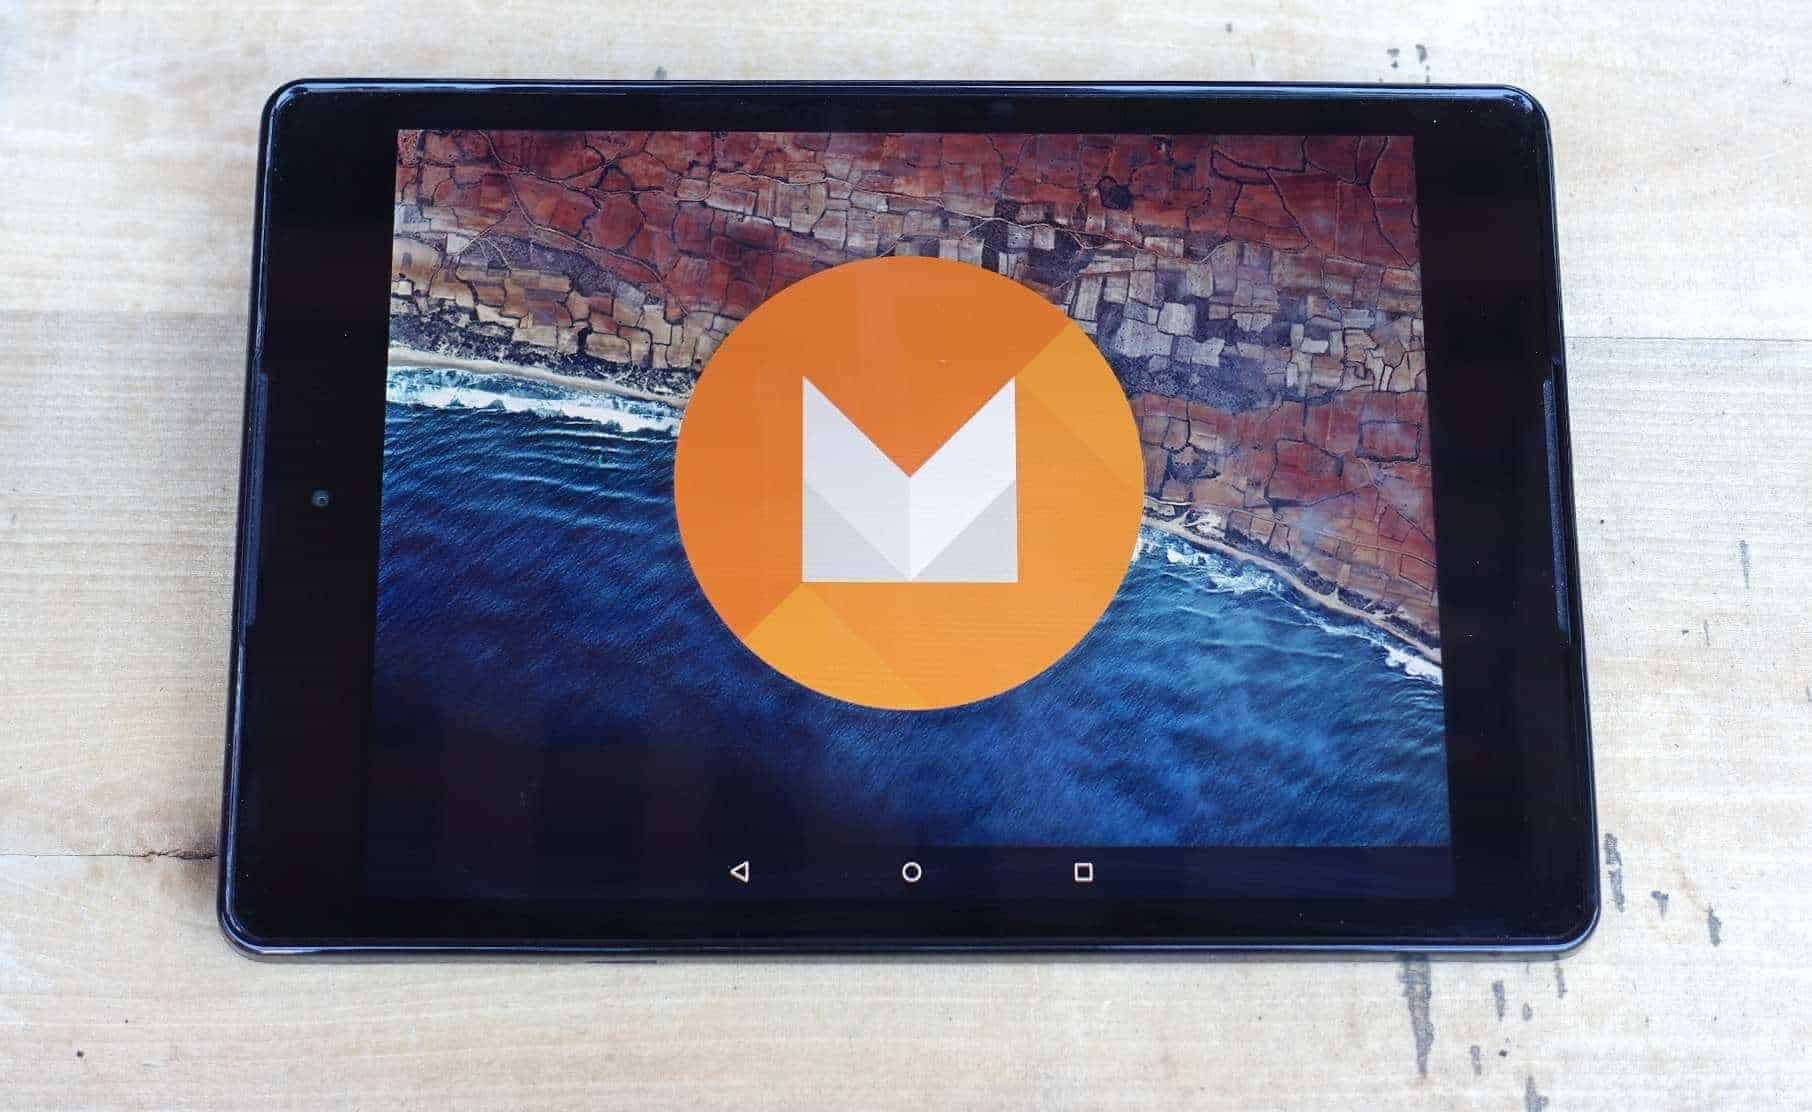 Install CWM / TWRP Recovery and Root Nexus 5, Nexus 6 and Nexus 9 Running on Android M Developer Preview 2